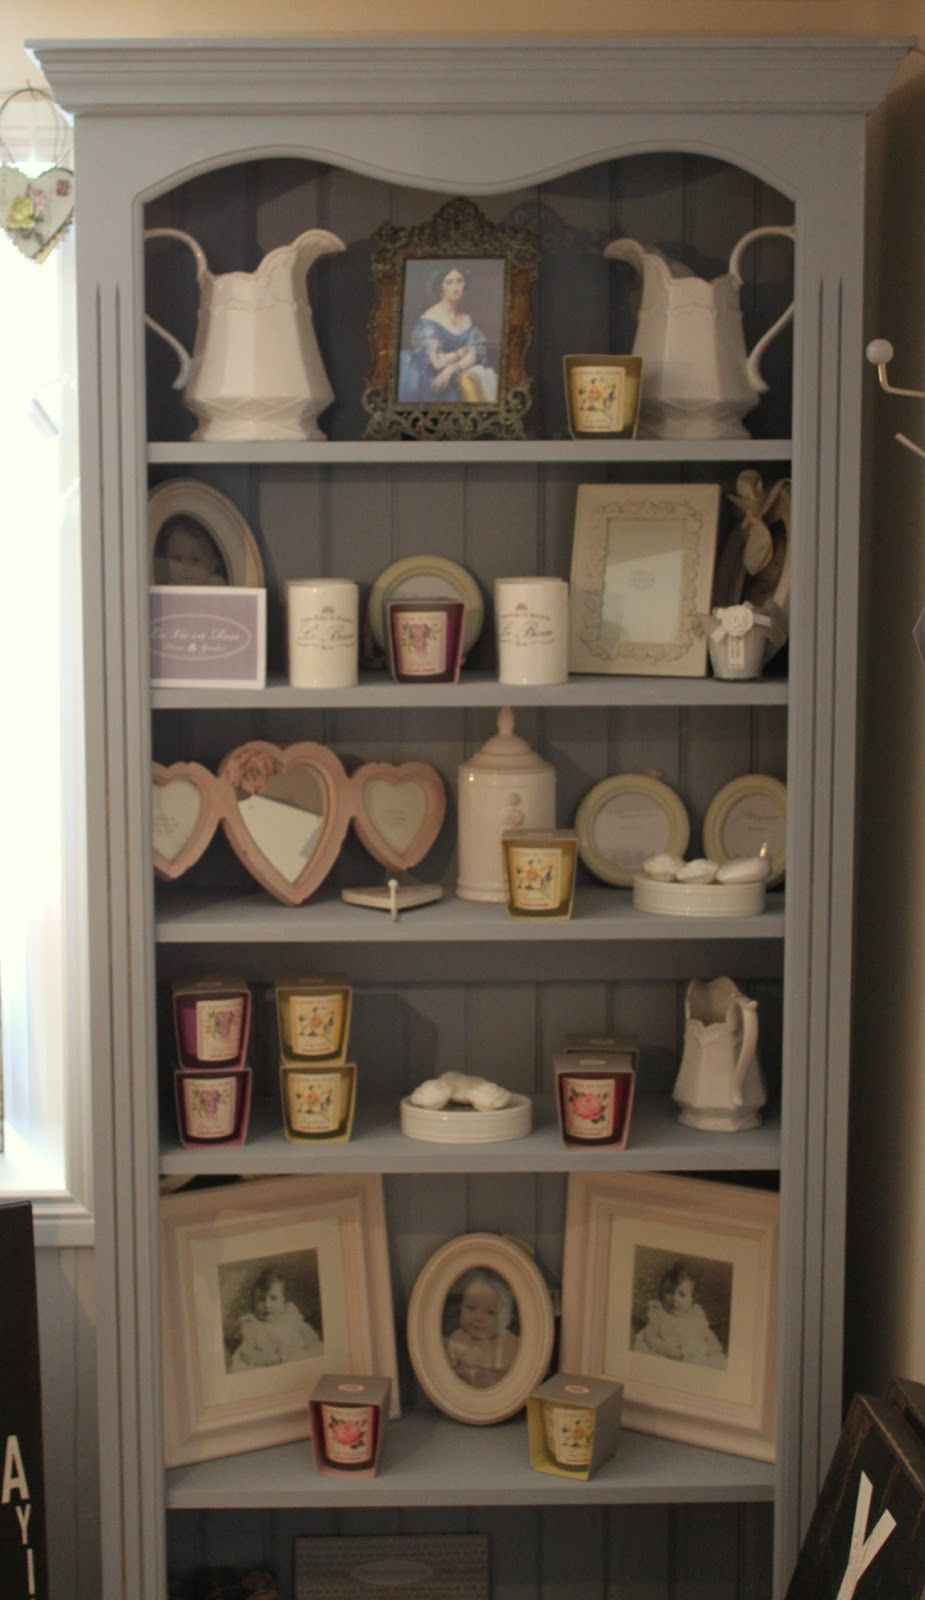 La Vie En Rose Bookcase Painted In Annie Sloan Chalk PaintTM